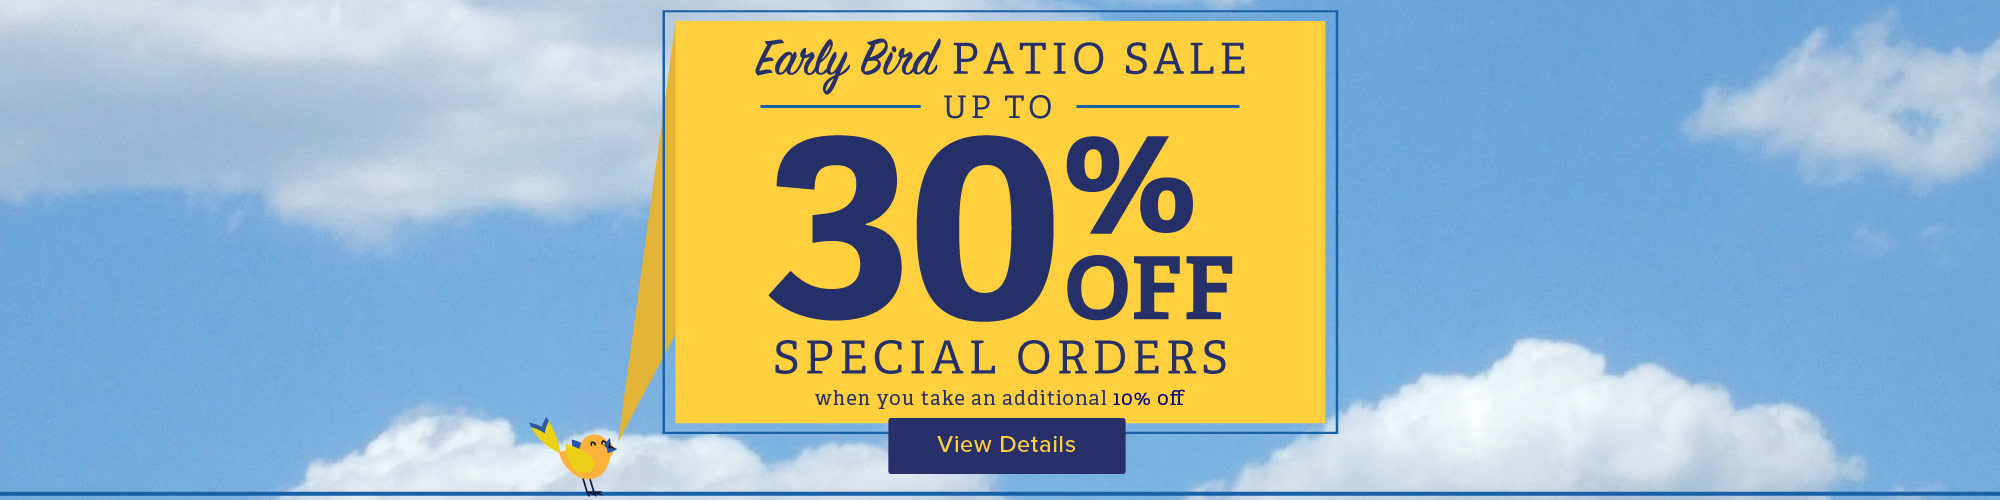 Shop Patio Furniture from brands like Paragon Casual, Seaside Casual, South Sea Outdoor Living, and more. View Patio Store Locations